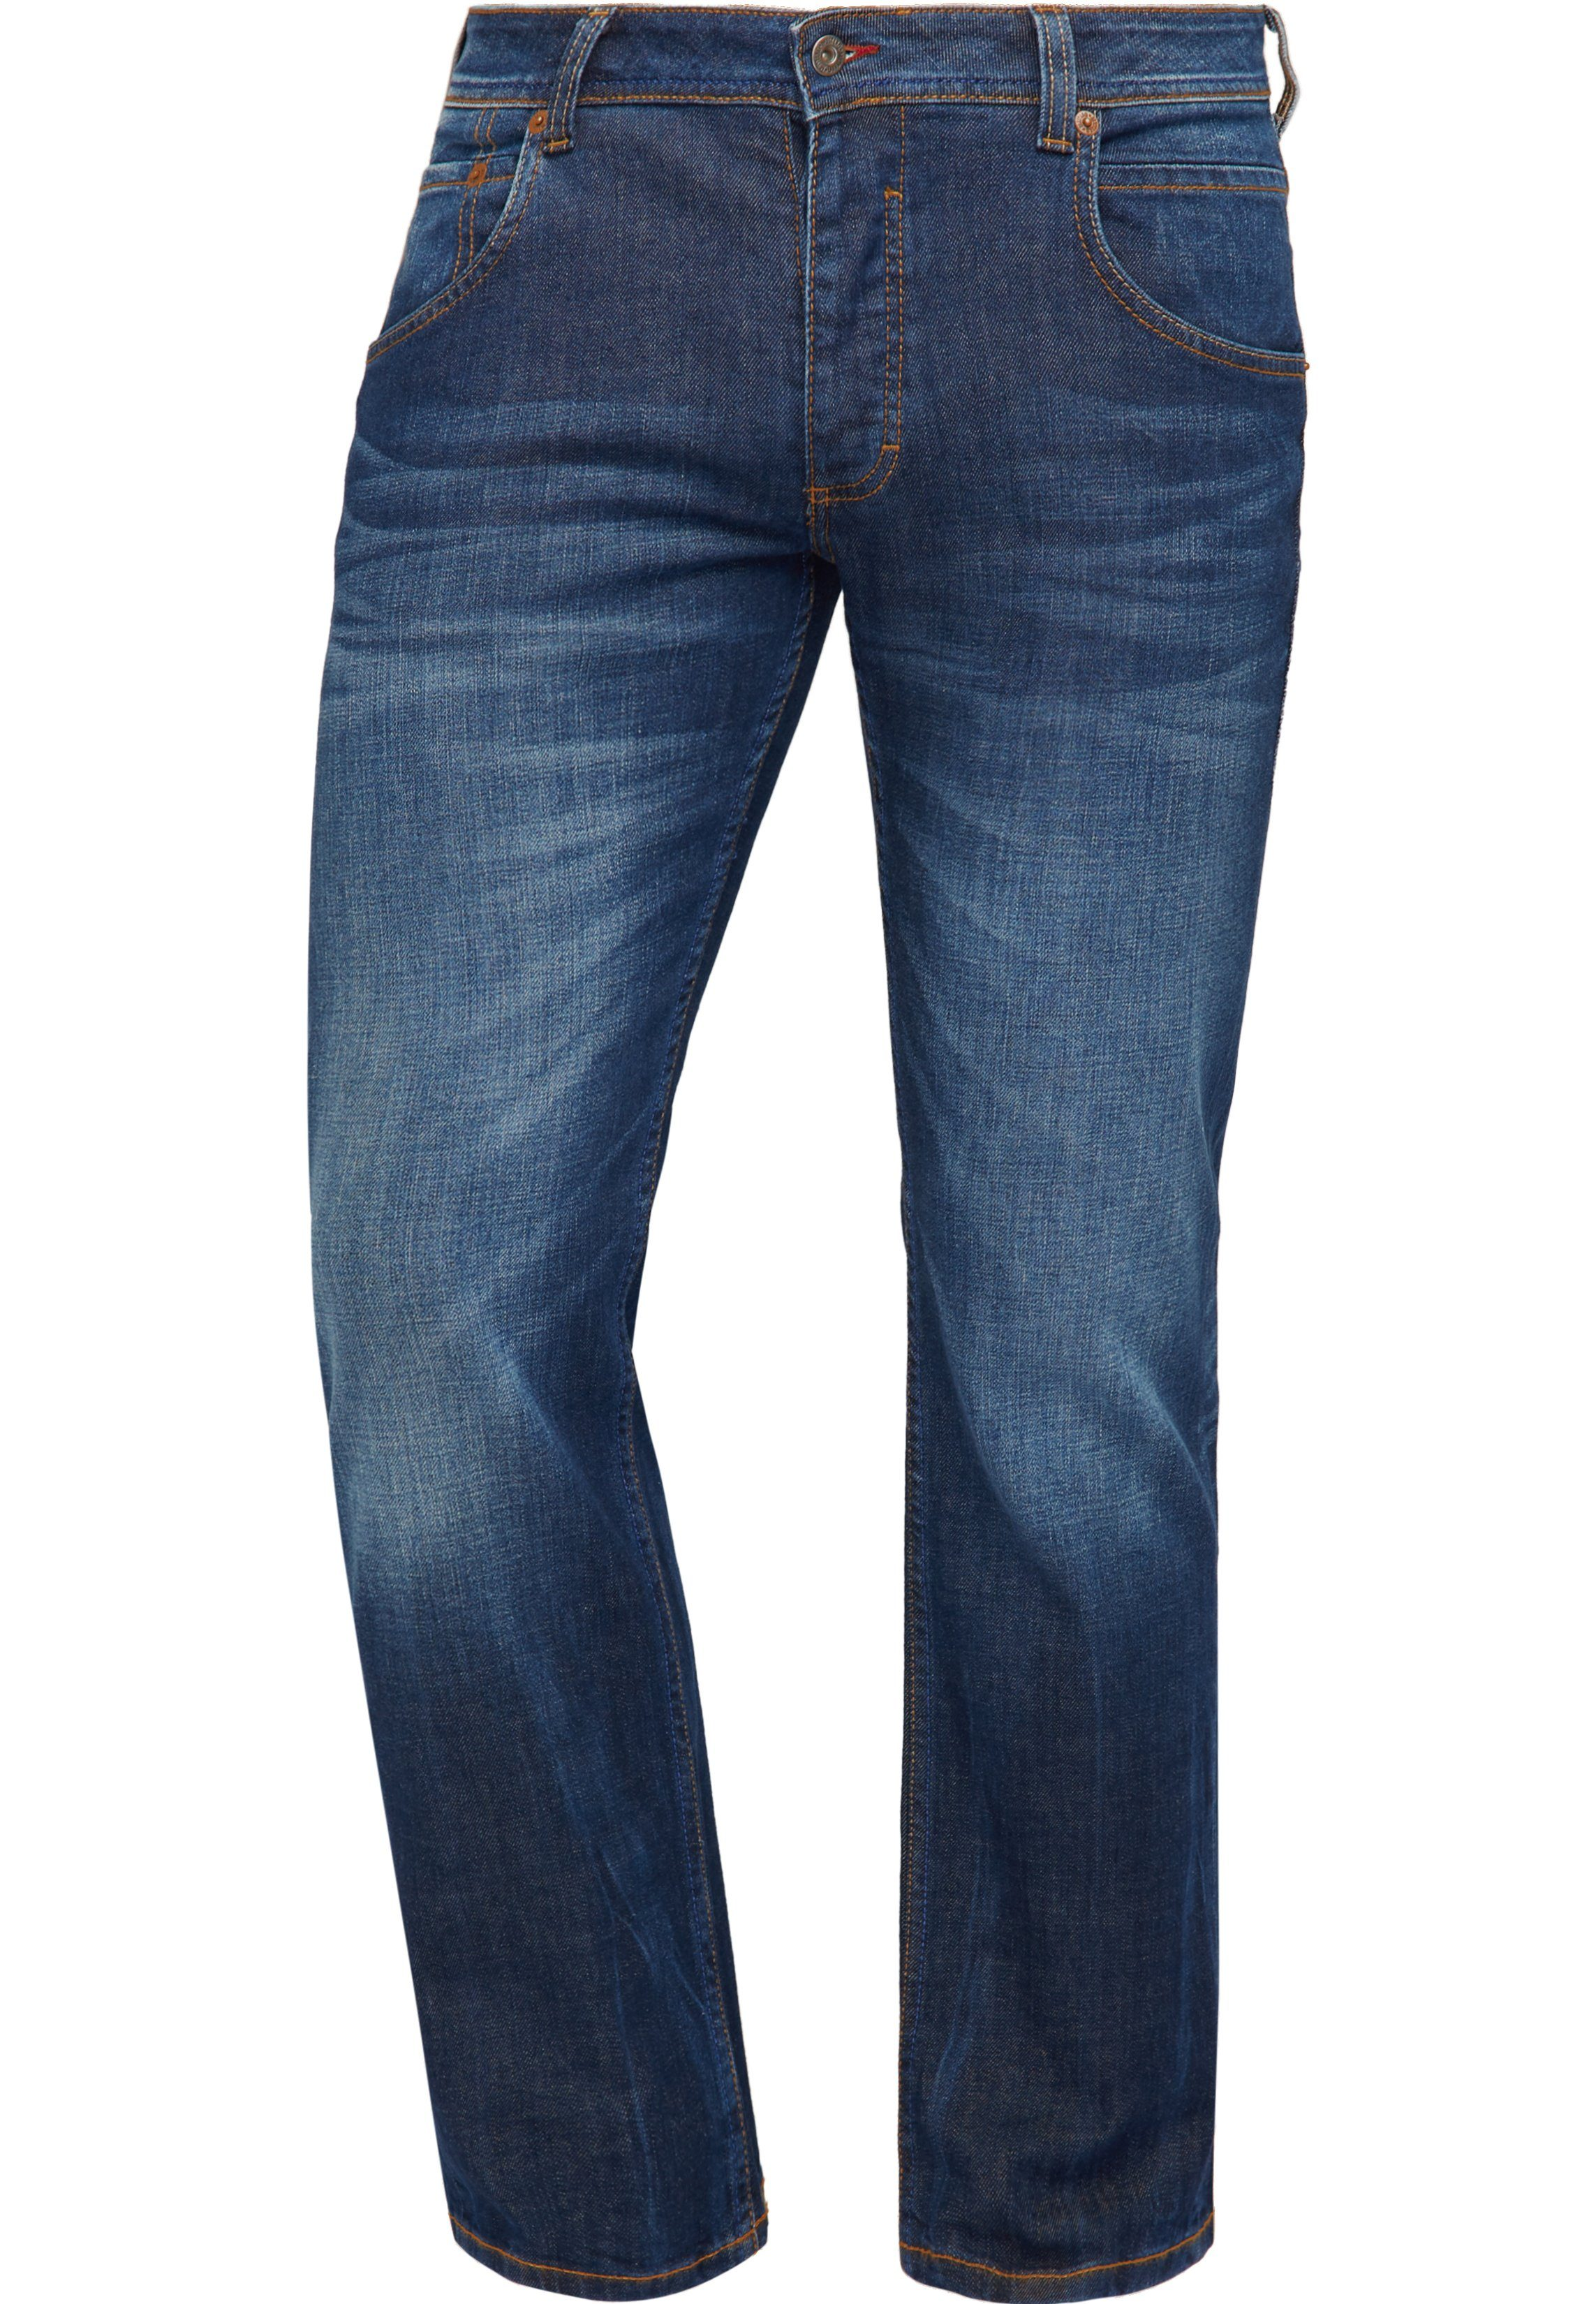 jeans »Michigan Straight«